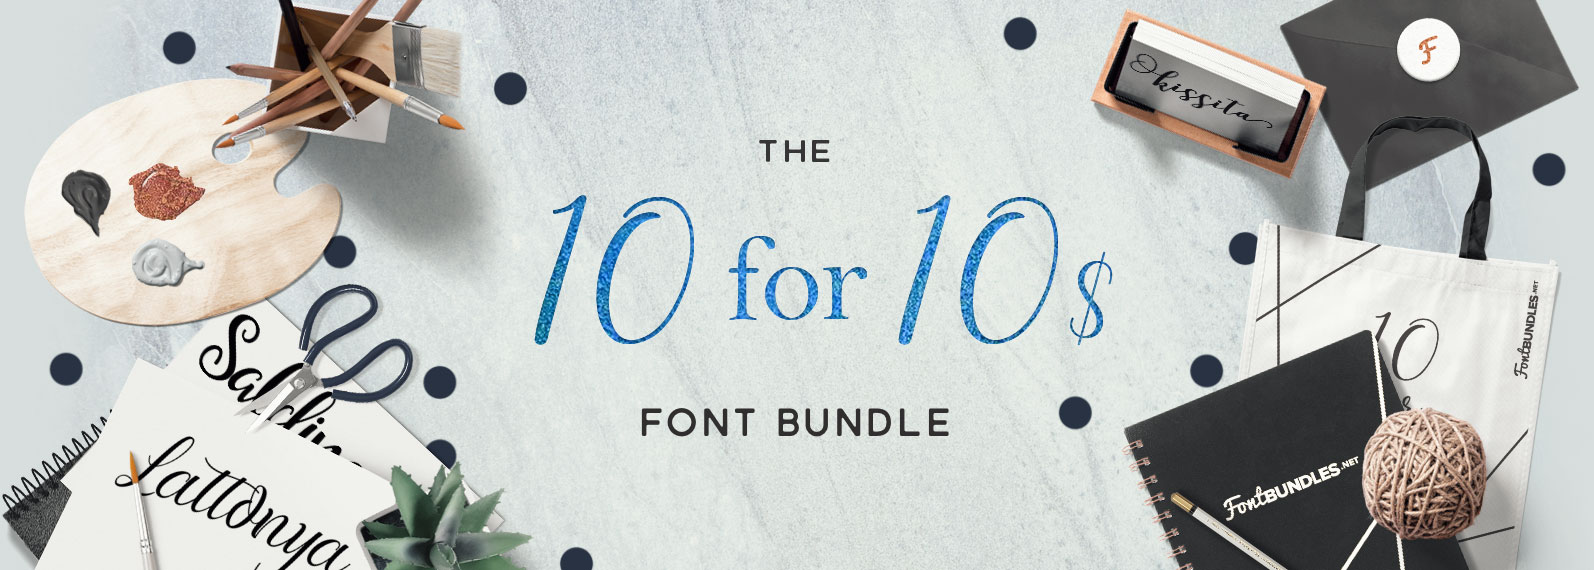 The 10 for 10$ font bundle